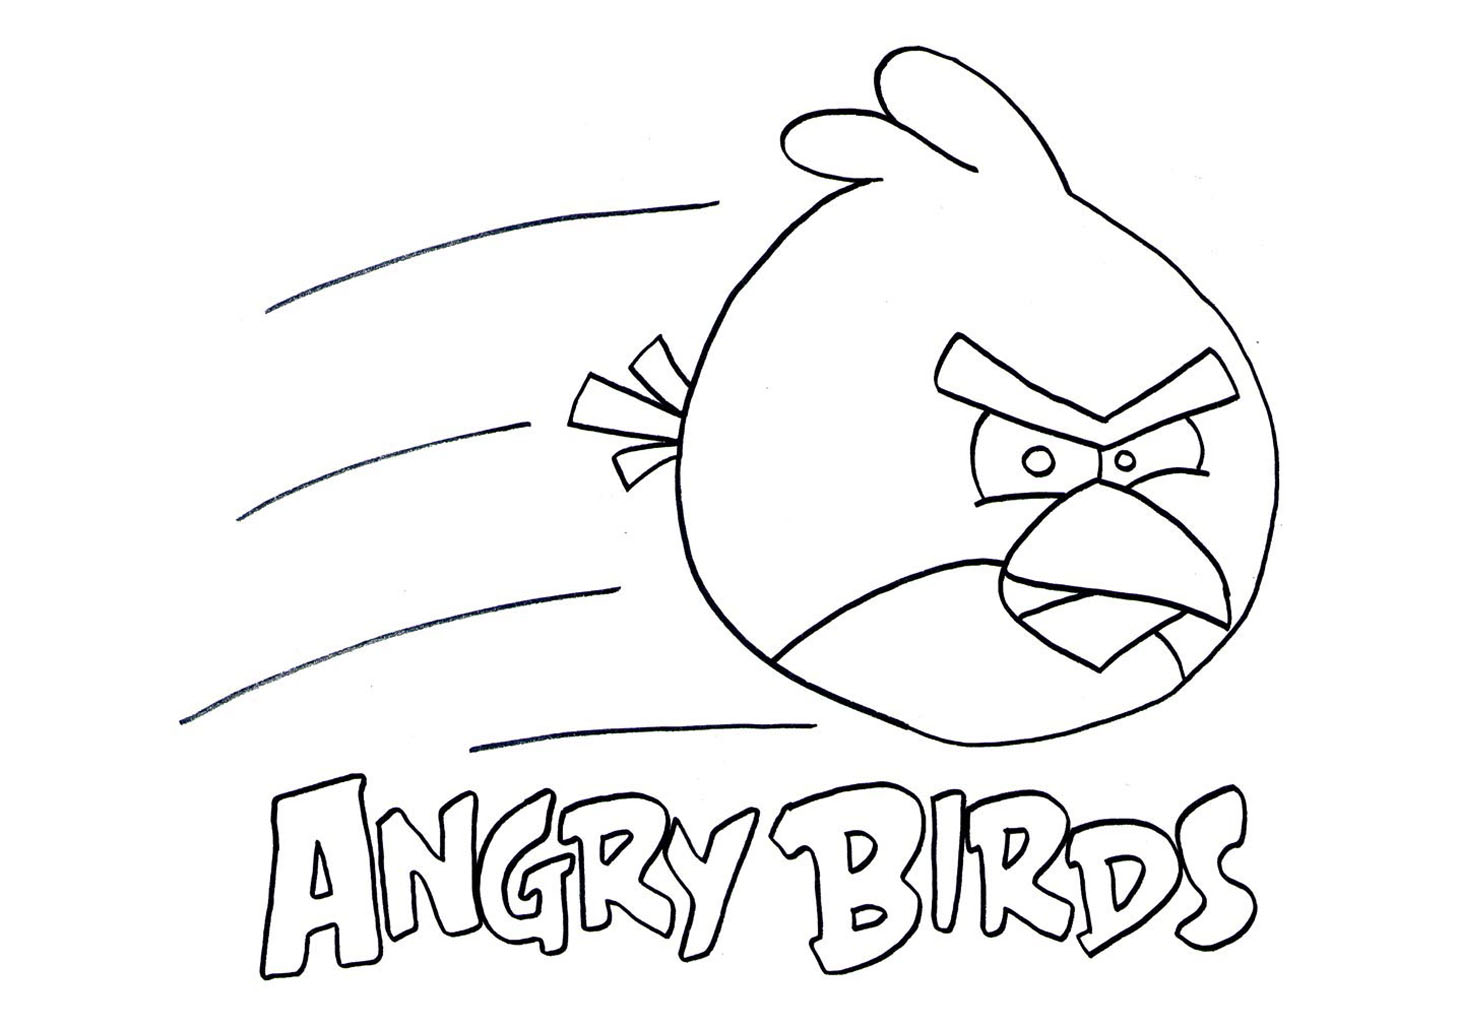 Angry birds coloring pages coloriage angry birds coloriages pour enfants - Coloriage angry birds ...